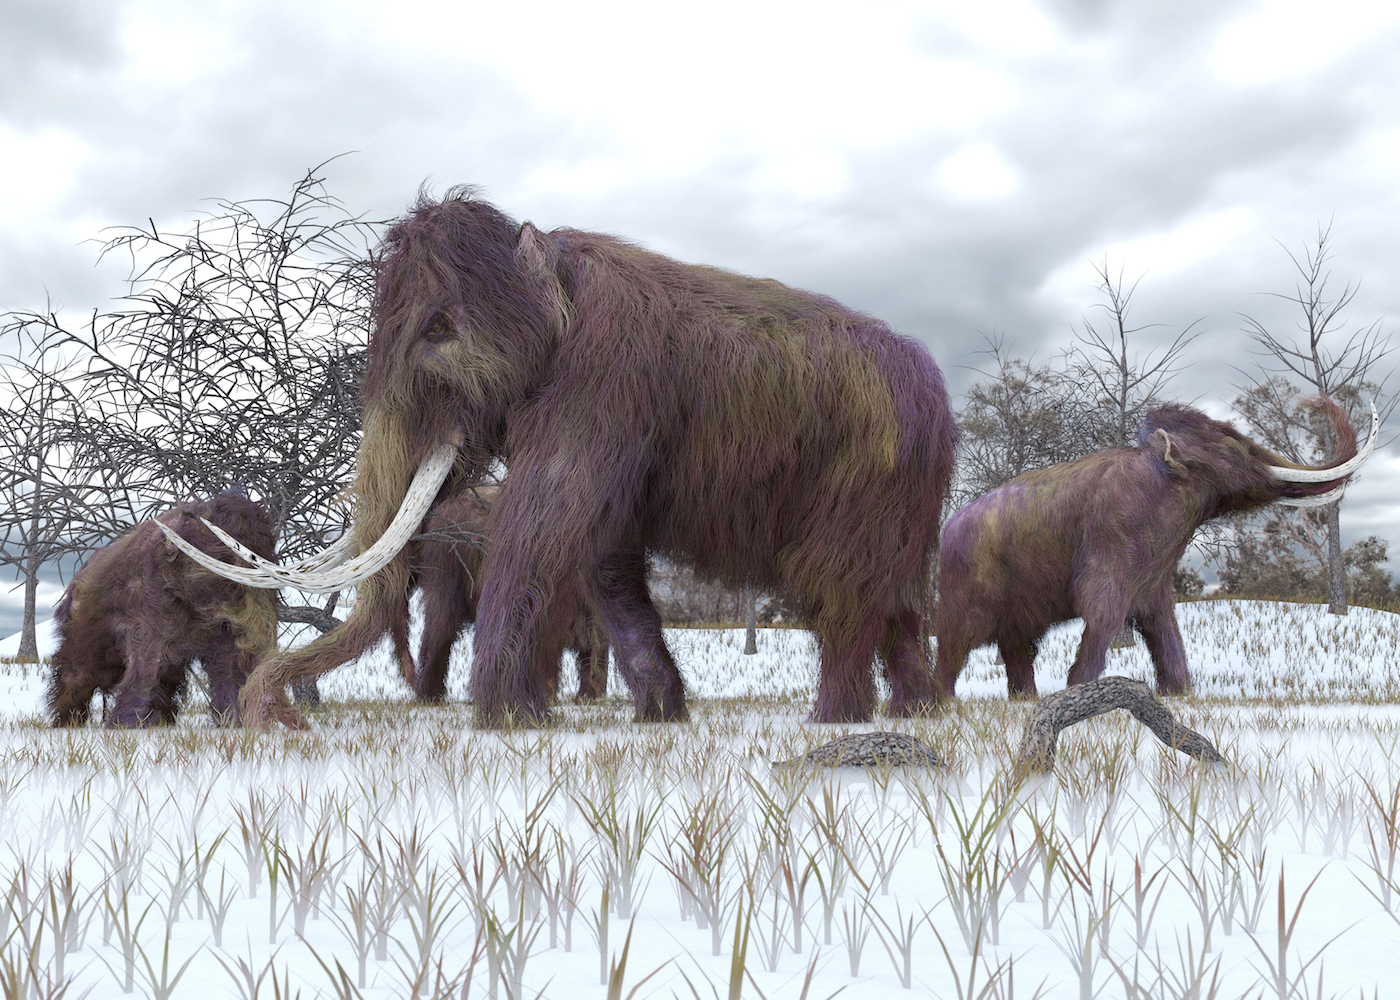 A Russian landowner has a plan to combat climate change by reverting a part of Siberia back to the Mammoth Steppes it was up until 12,000 years ago.